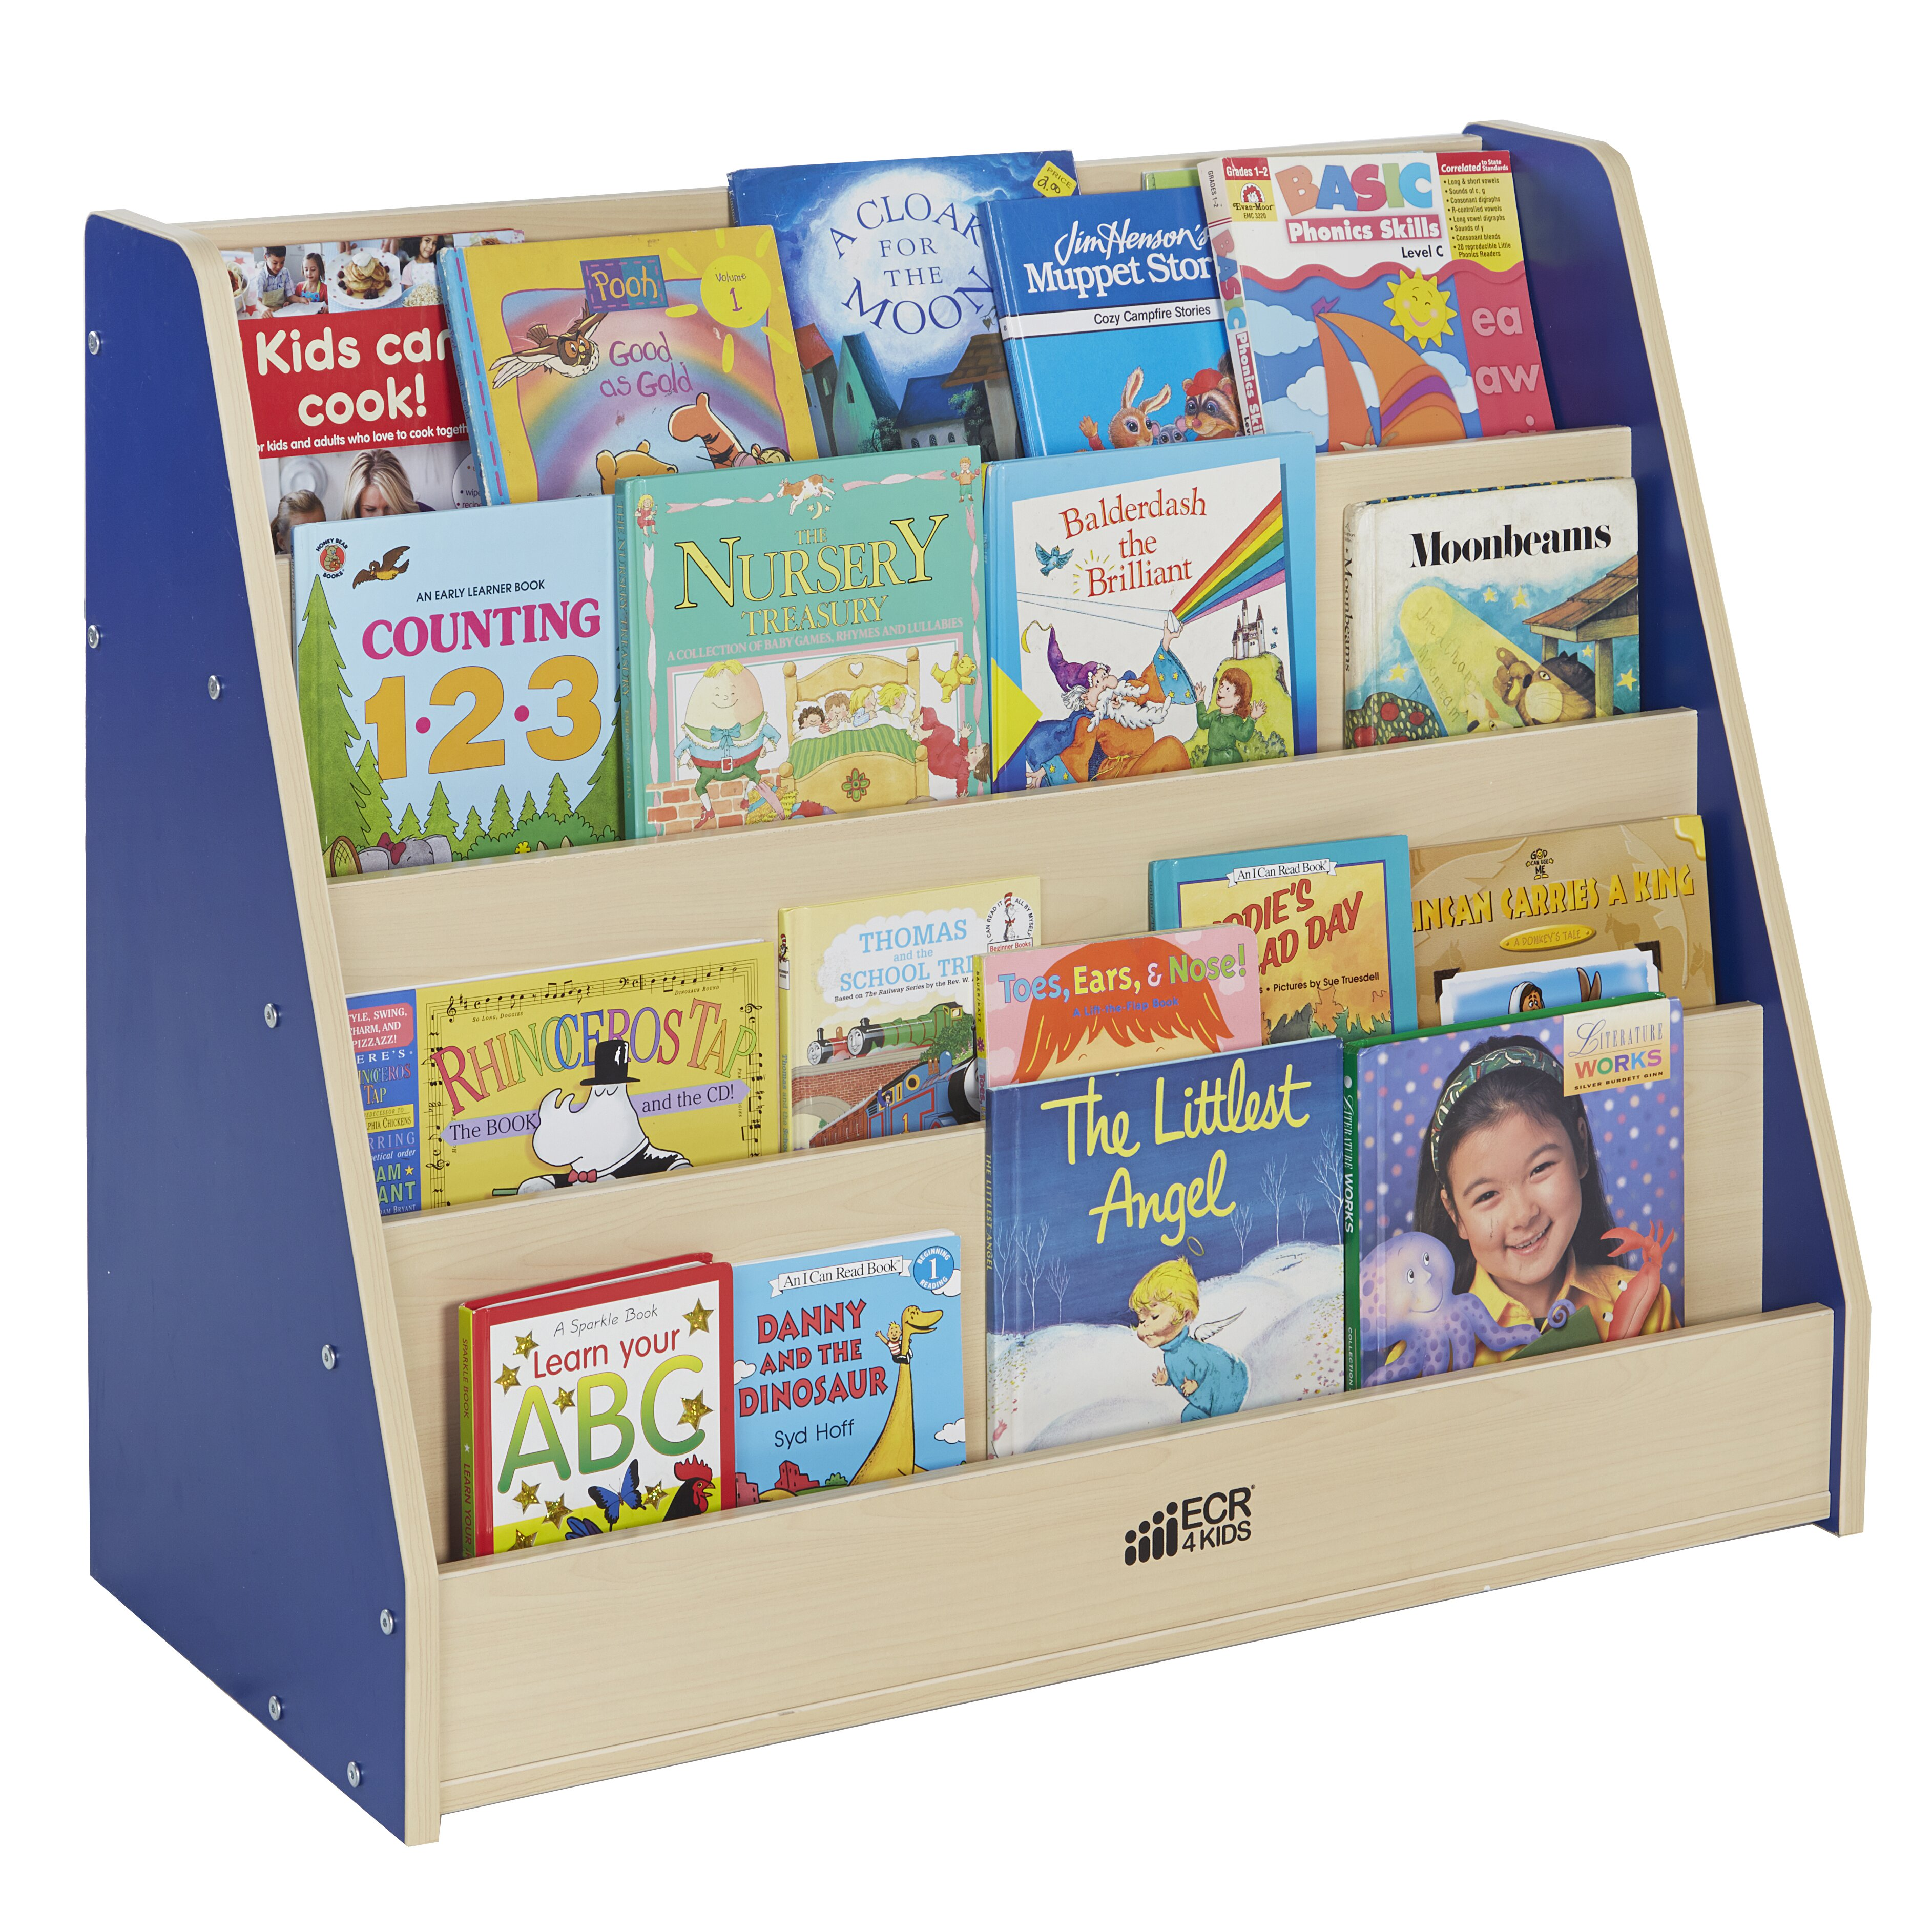 Early Years Display Book Essentials%e%%a%bbook%bdisplay%bstand